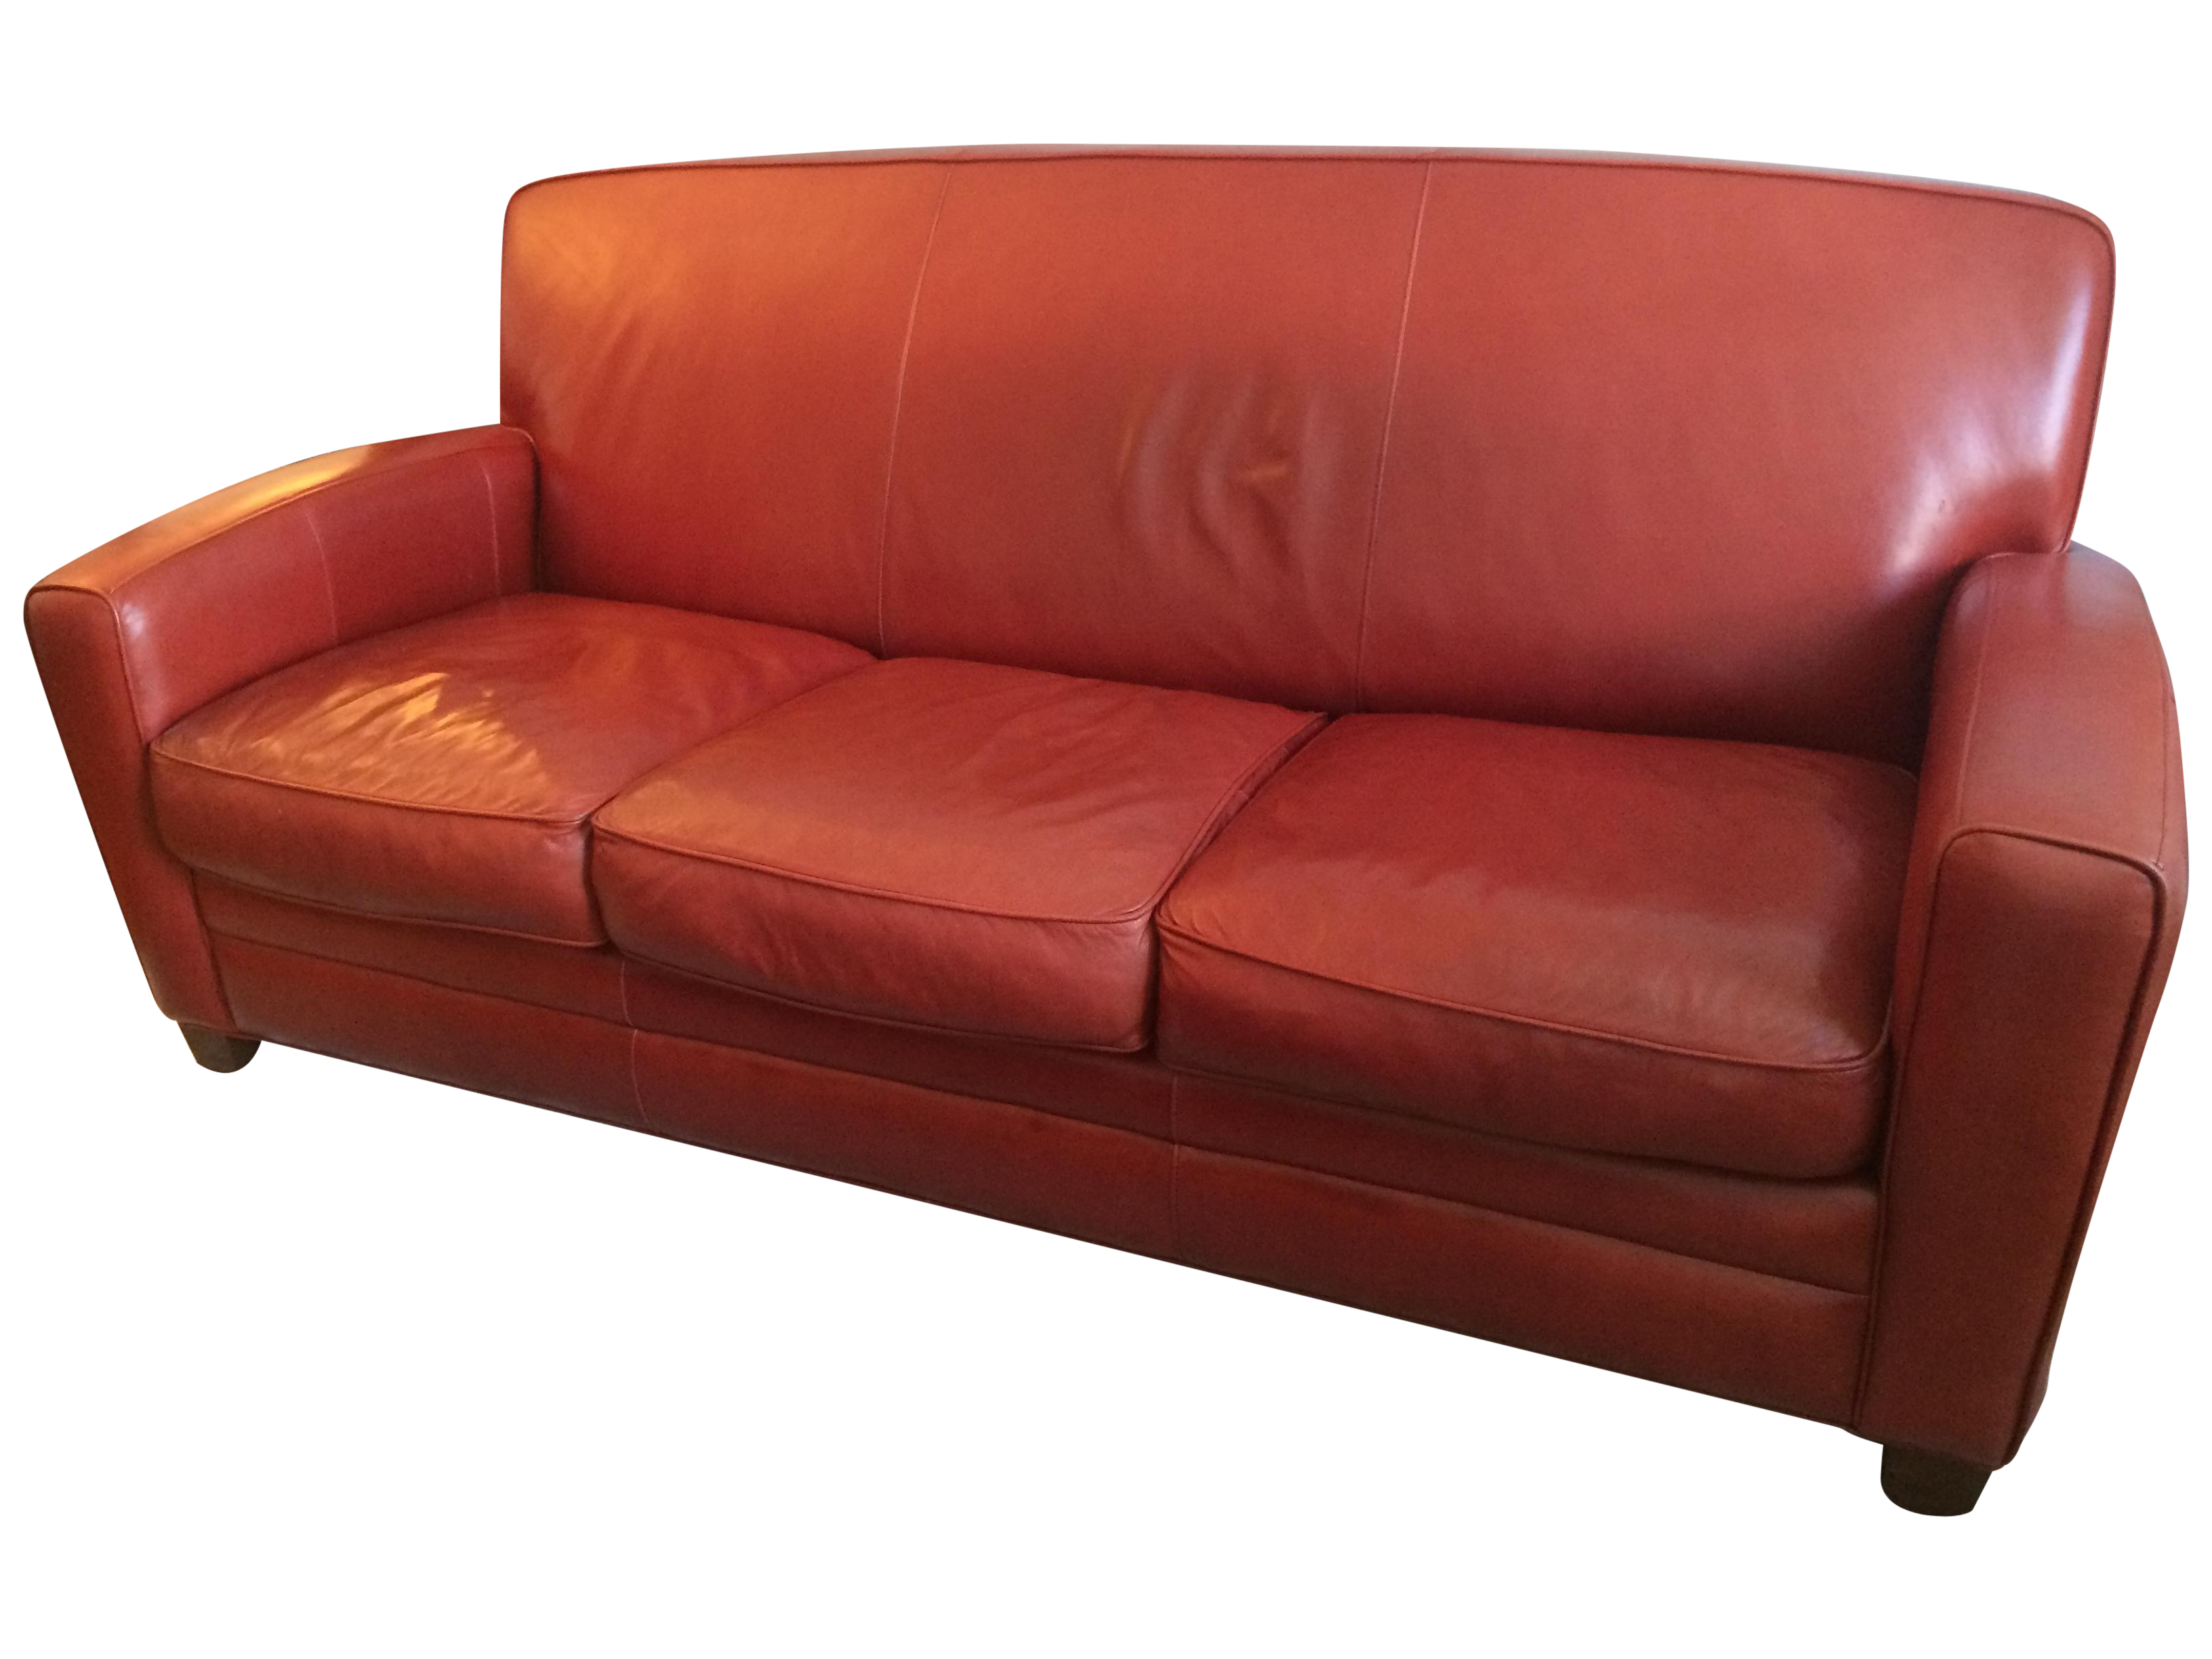 Thomasville Contemporary Red Leather Sofa Chairish